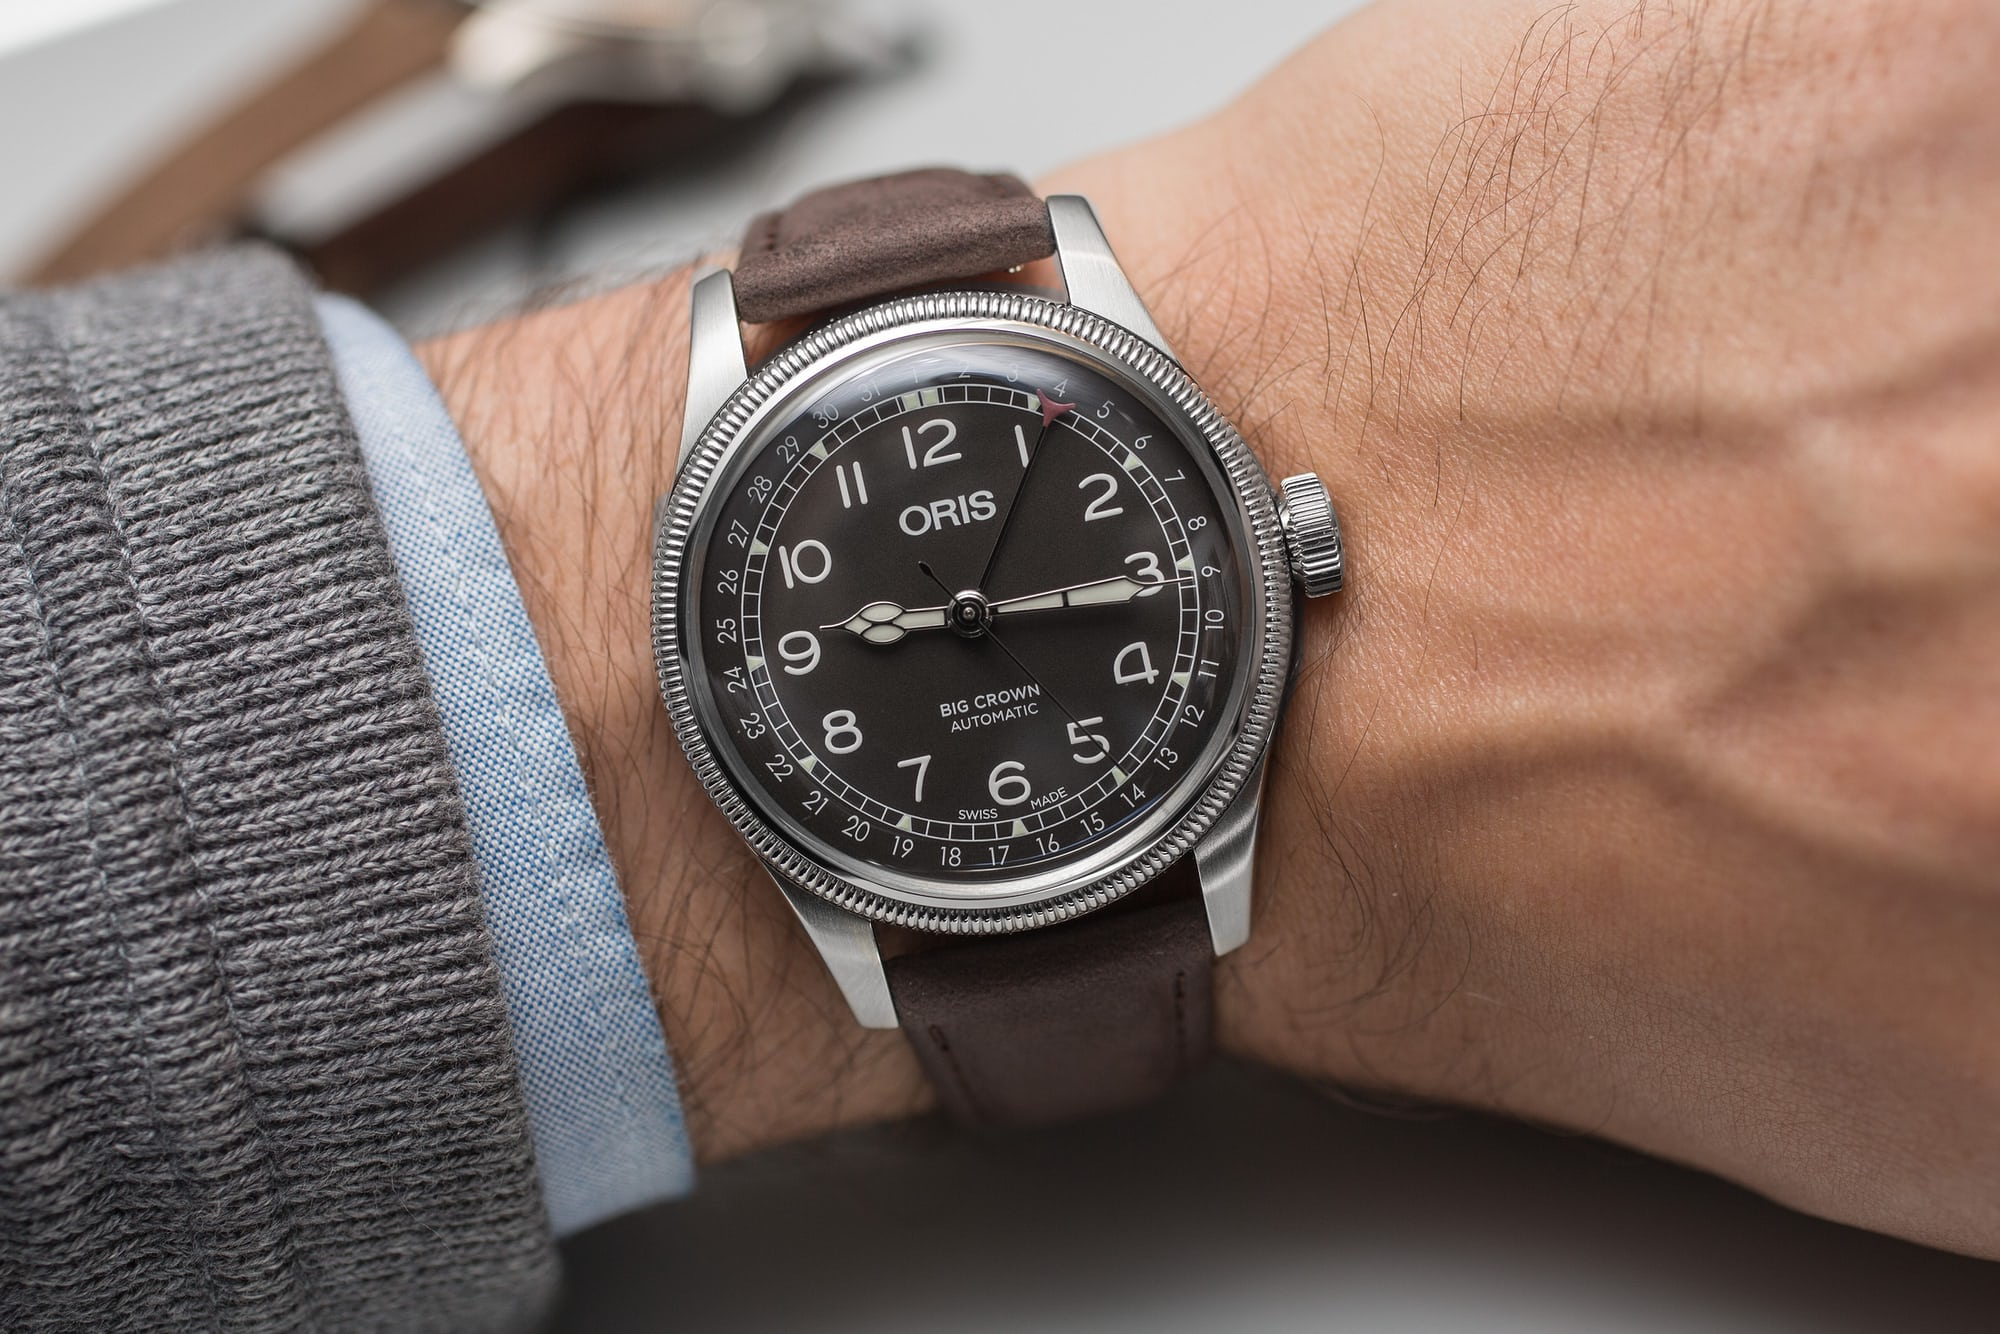 Happenings: Register Now For The HODINKEE 10th Anniversary Weekend Oris